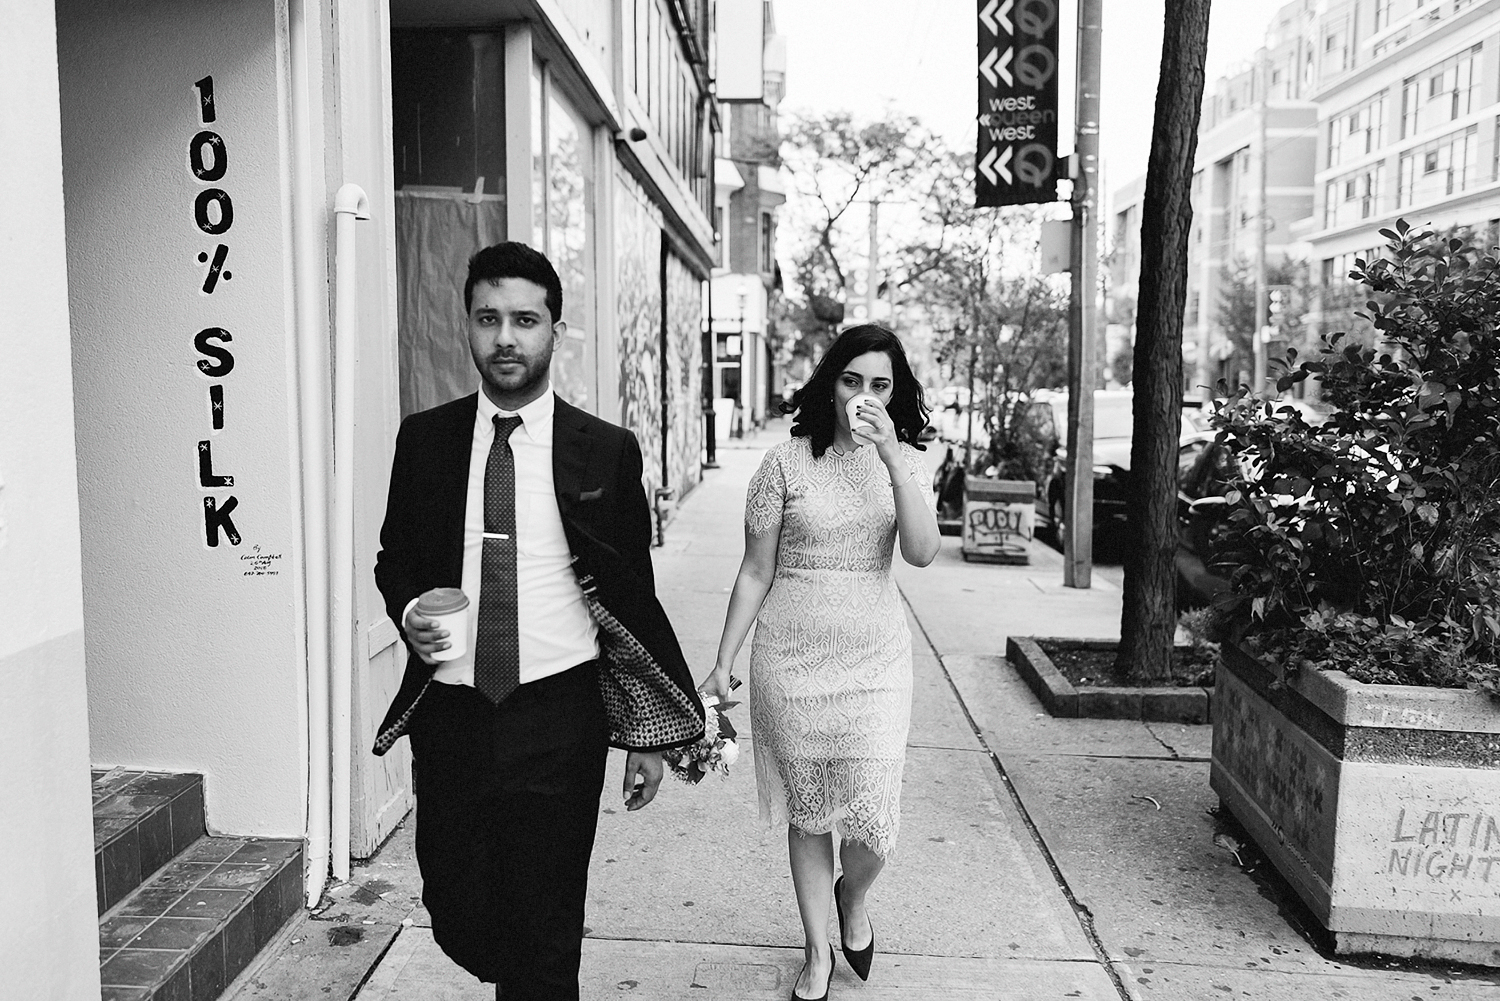 Best-Toronto-Wedding-Photographers-Afforadable-Candid-Photojournalistic-Photography-Toronto-Gladstone-Hotel-Wedding-Venue-Downtown-Urban-Brunch-Wedding-Inspiration-persian-Ceremony-Bride-and-Groom-Portraits-Walking-Along-Queen-Street-West.jpg